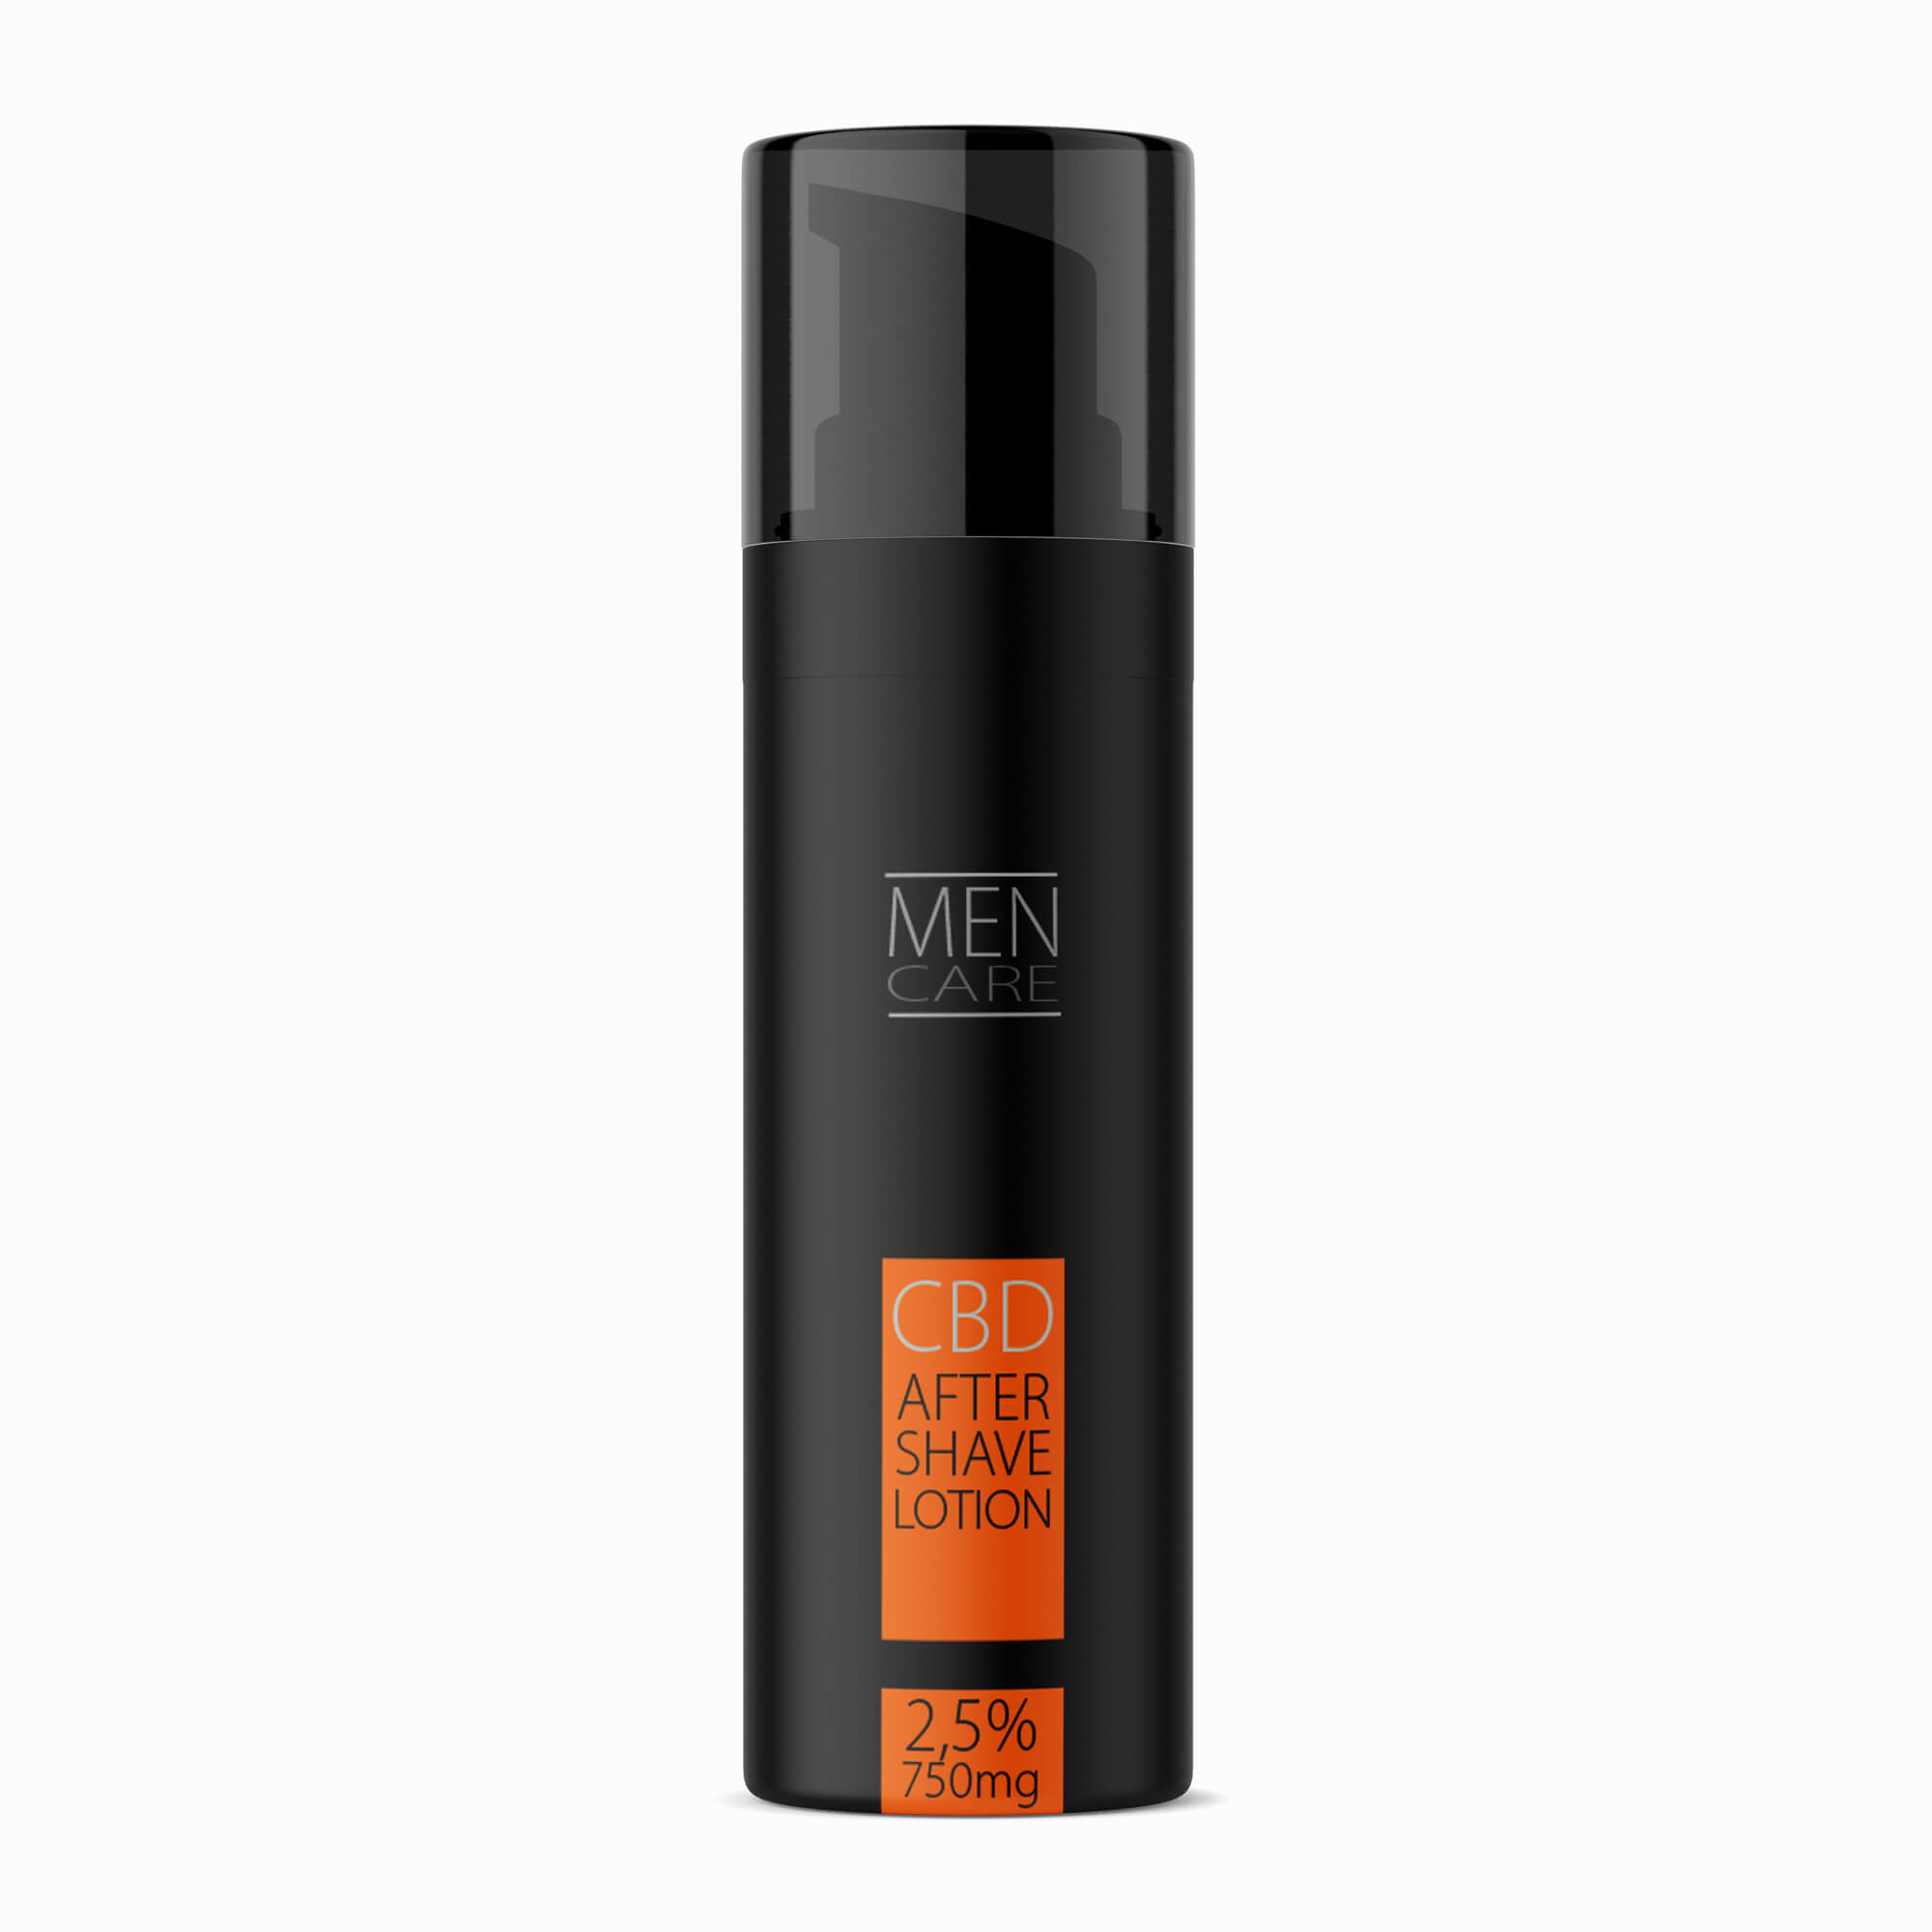 CBD-Aftershave-Lotion 2,5%